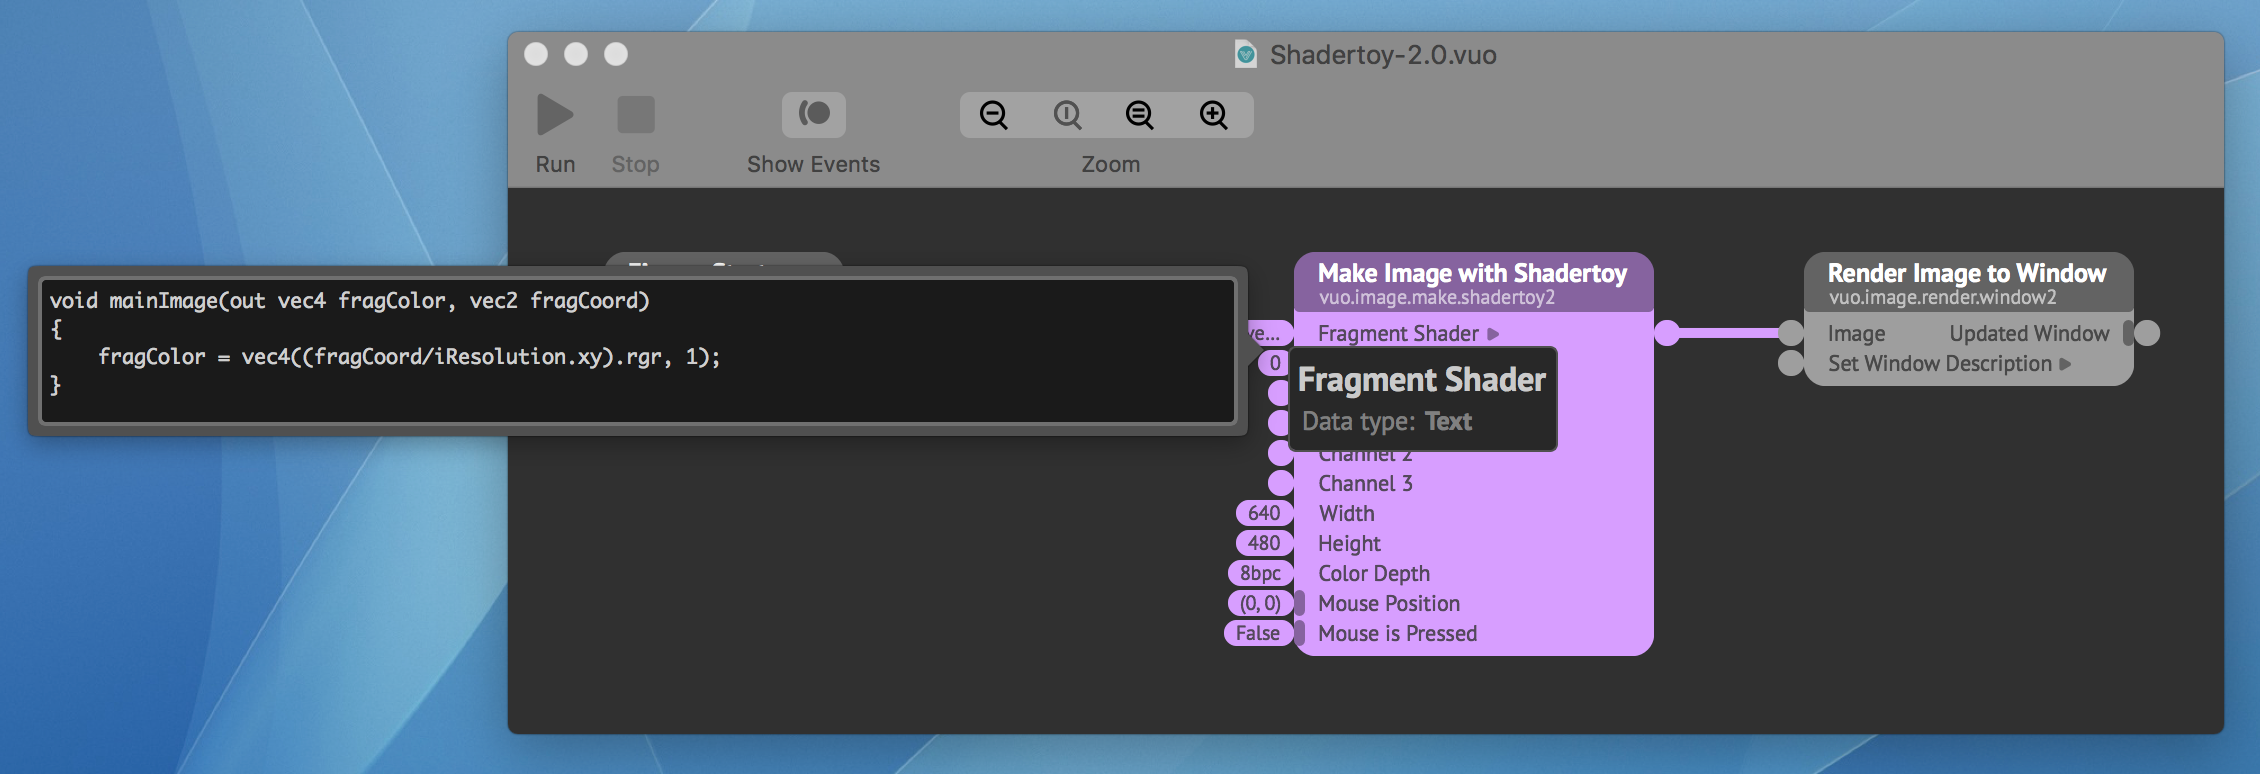 Make Image with Shadertoy node with new syntax in input editor